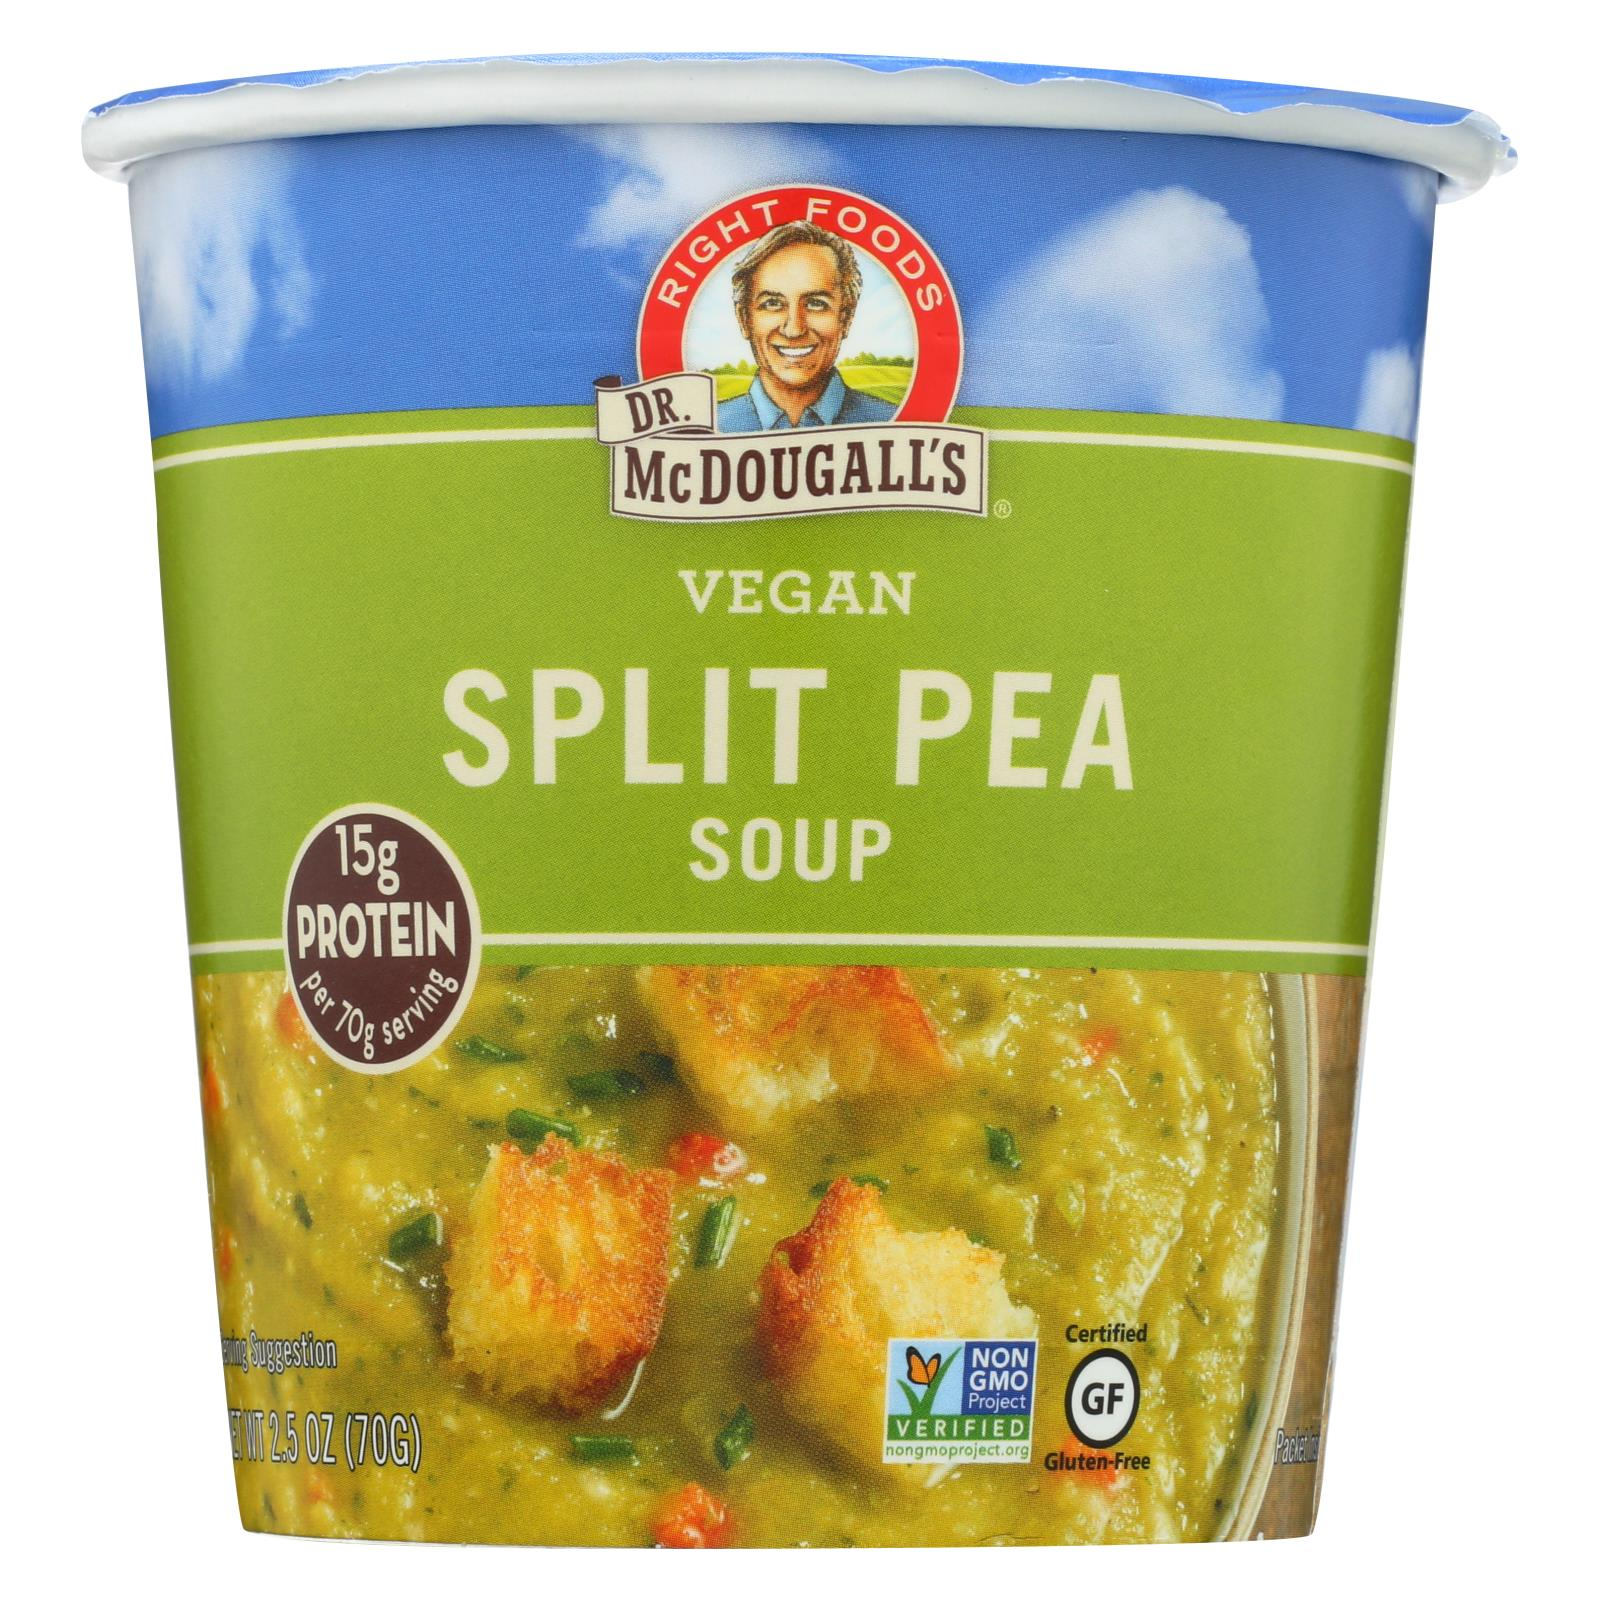 Dr. Mcdougall's Vegan Split Pea And Barley Soup Big Cup - Case Of 6 - 2.5 Oz. HG0746859